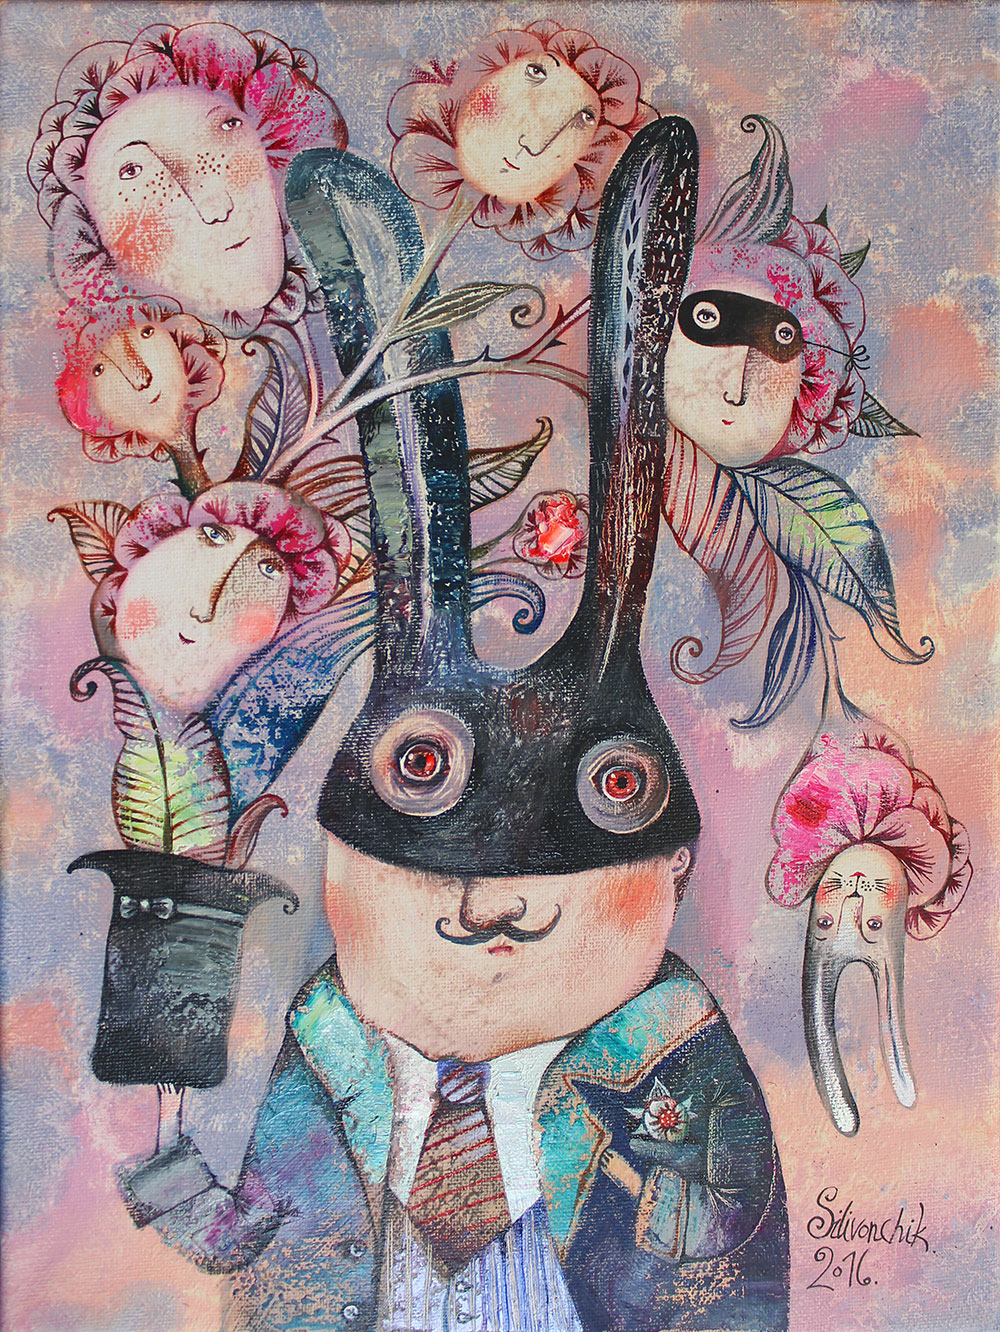 Magic Rabbit. Alice in Wonderland. 2016. 16 x 12 in. (40x30cm). Oil on canvas